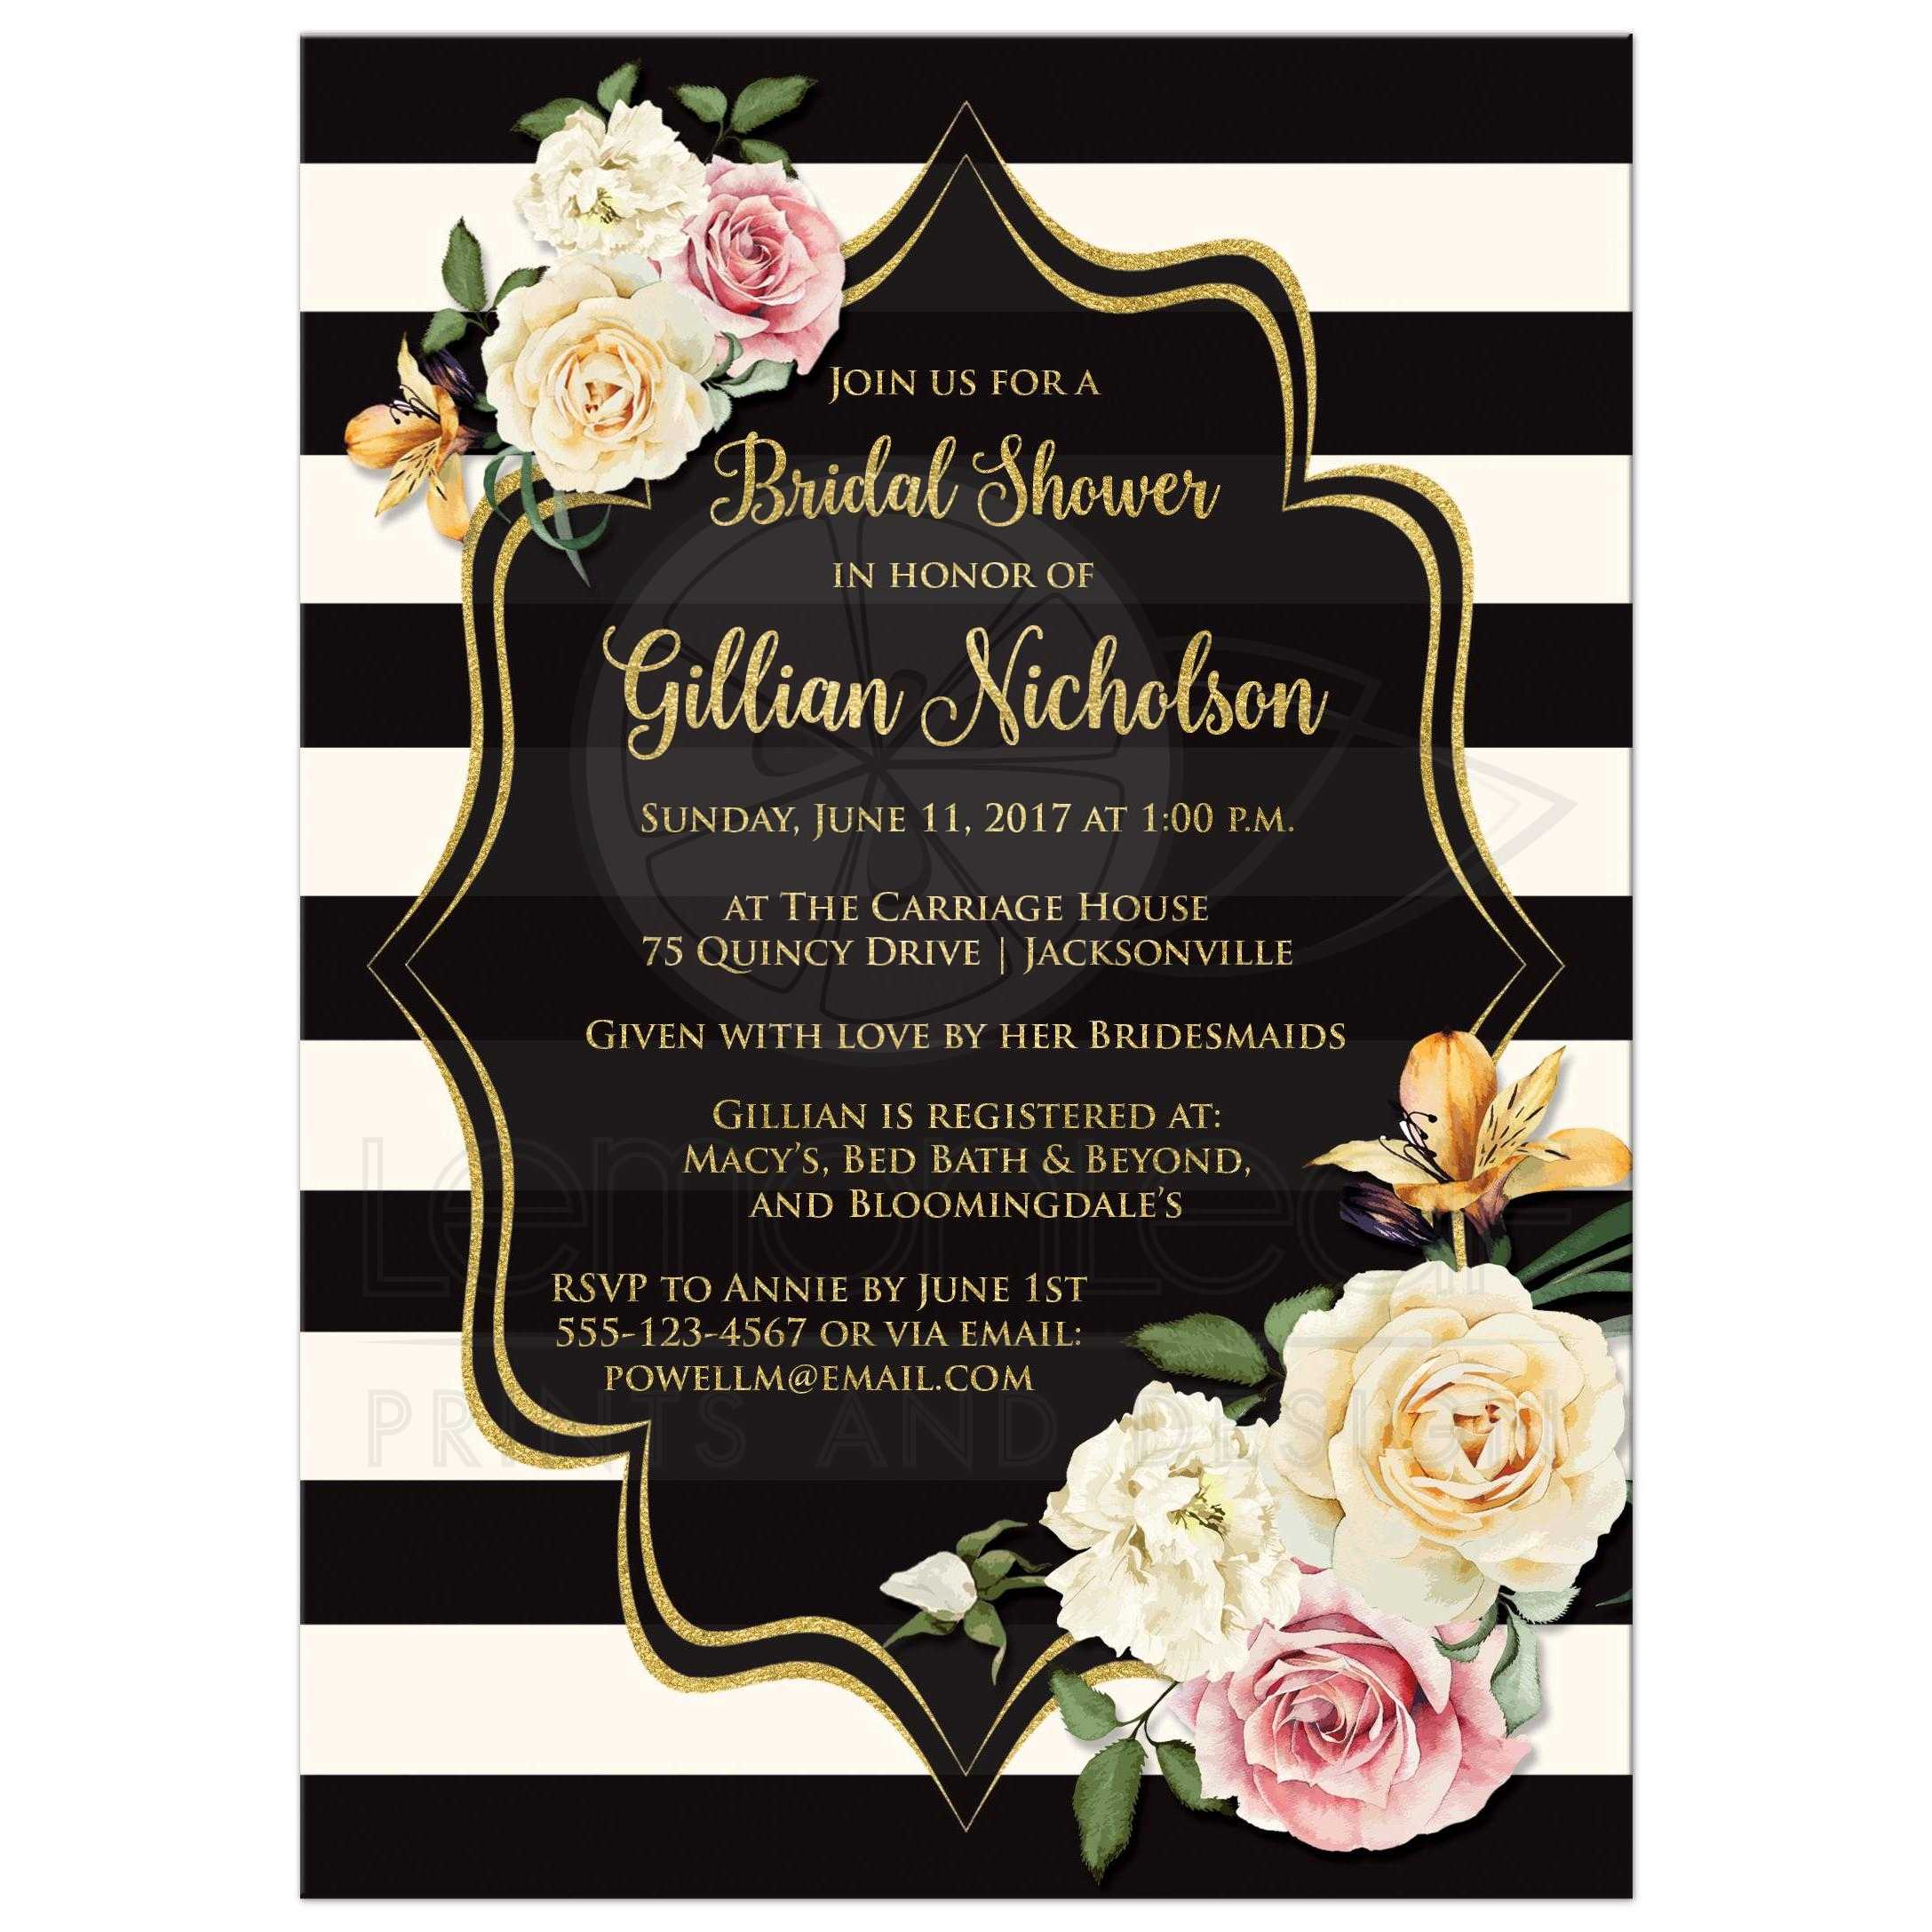 Bridal Shower Invitation Black Ivory Stripes Vintage Floral